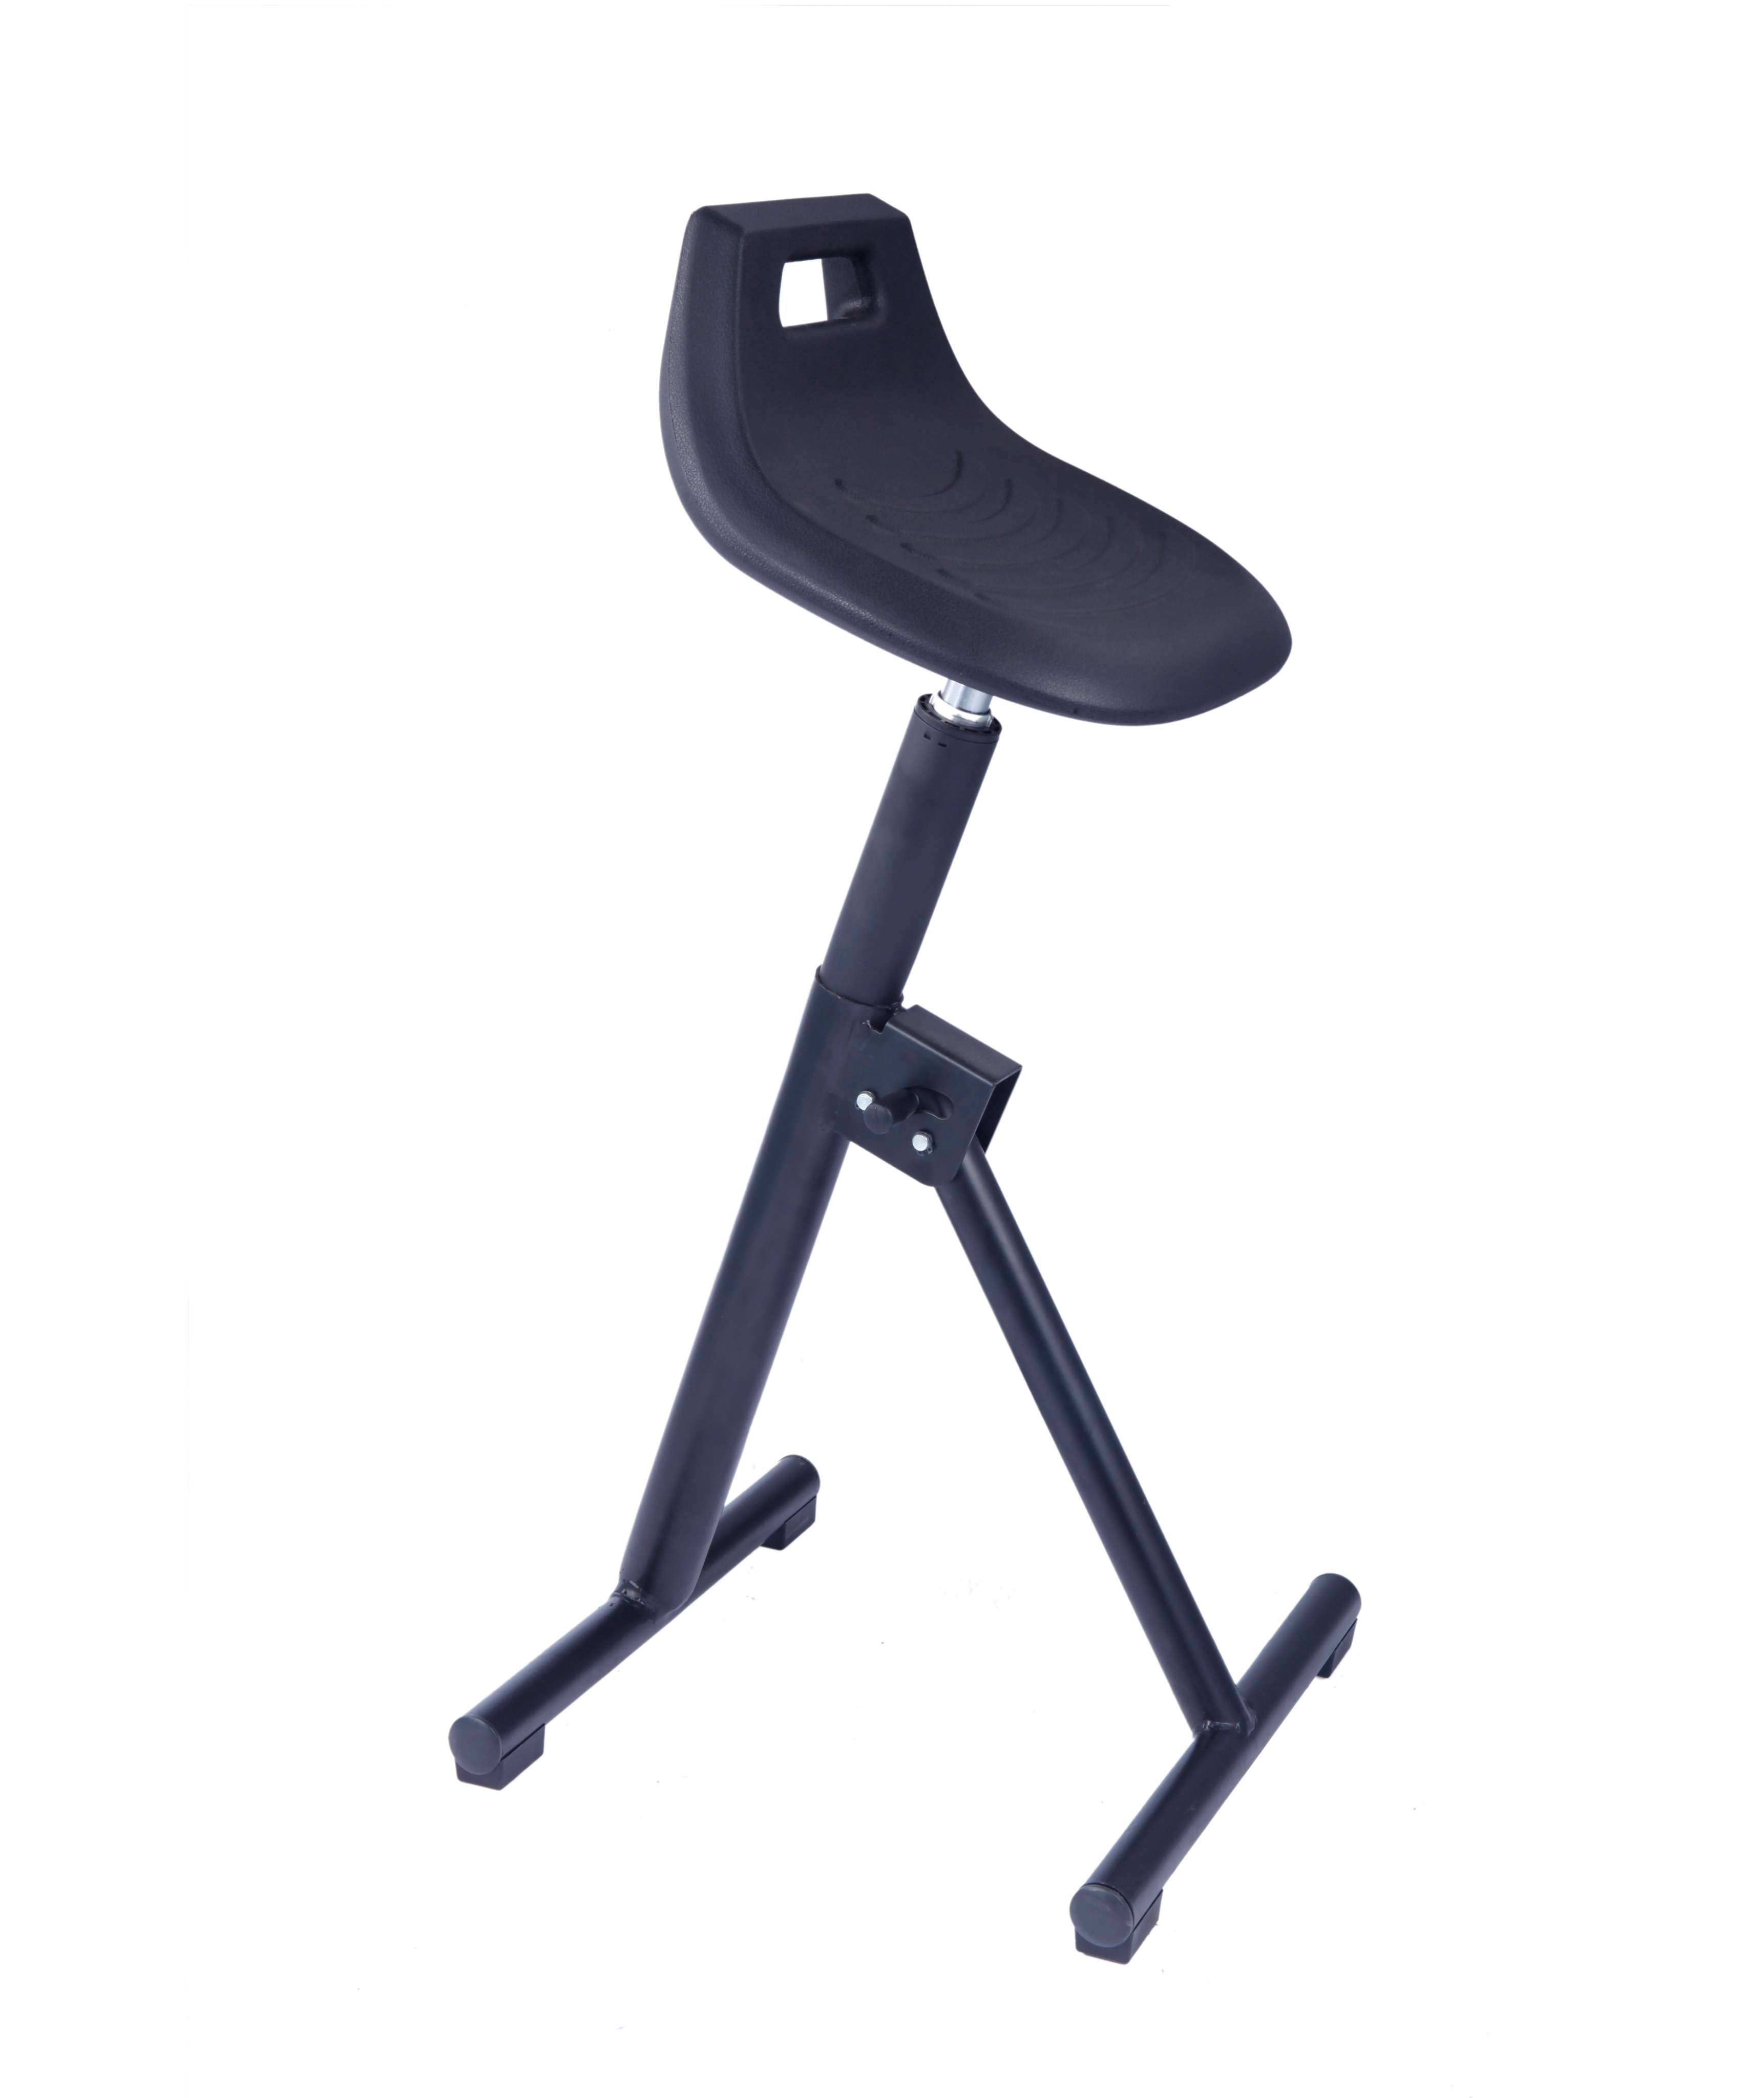 PU foam sit stand chair sit stand chair cleanroom chair ESD